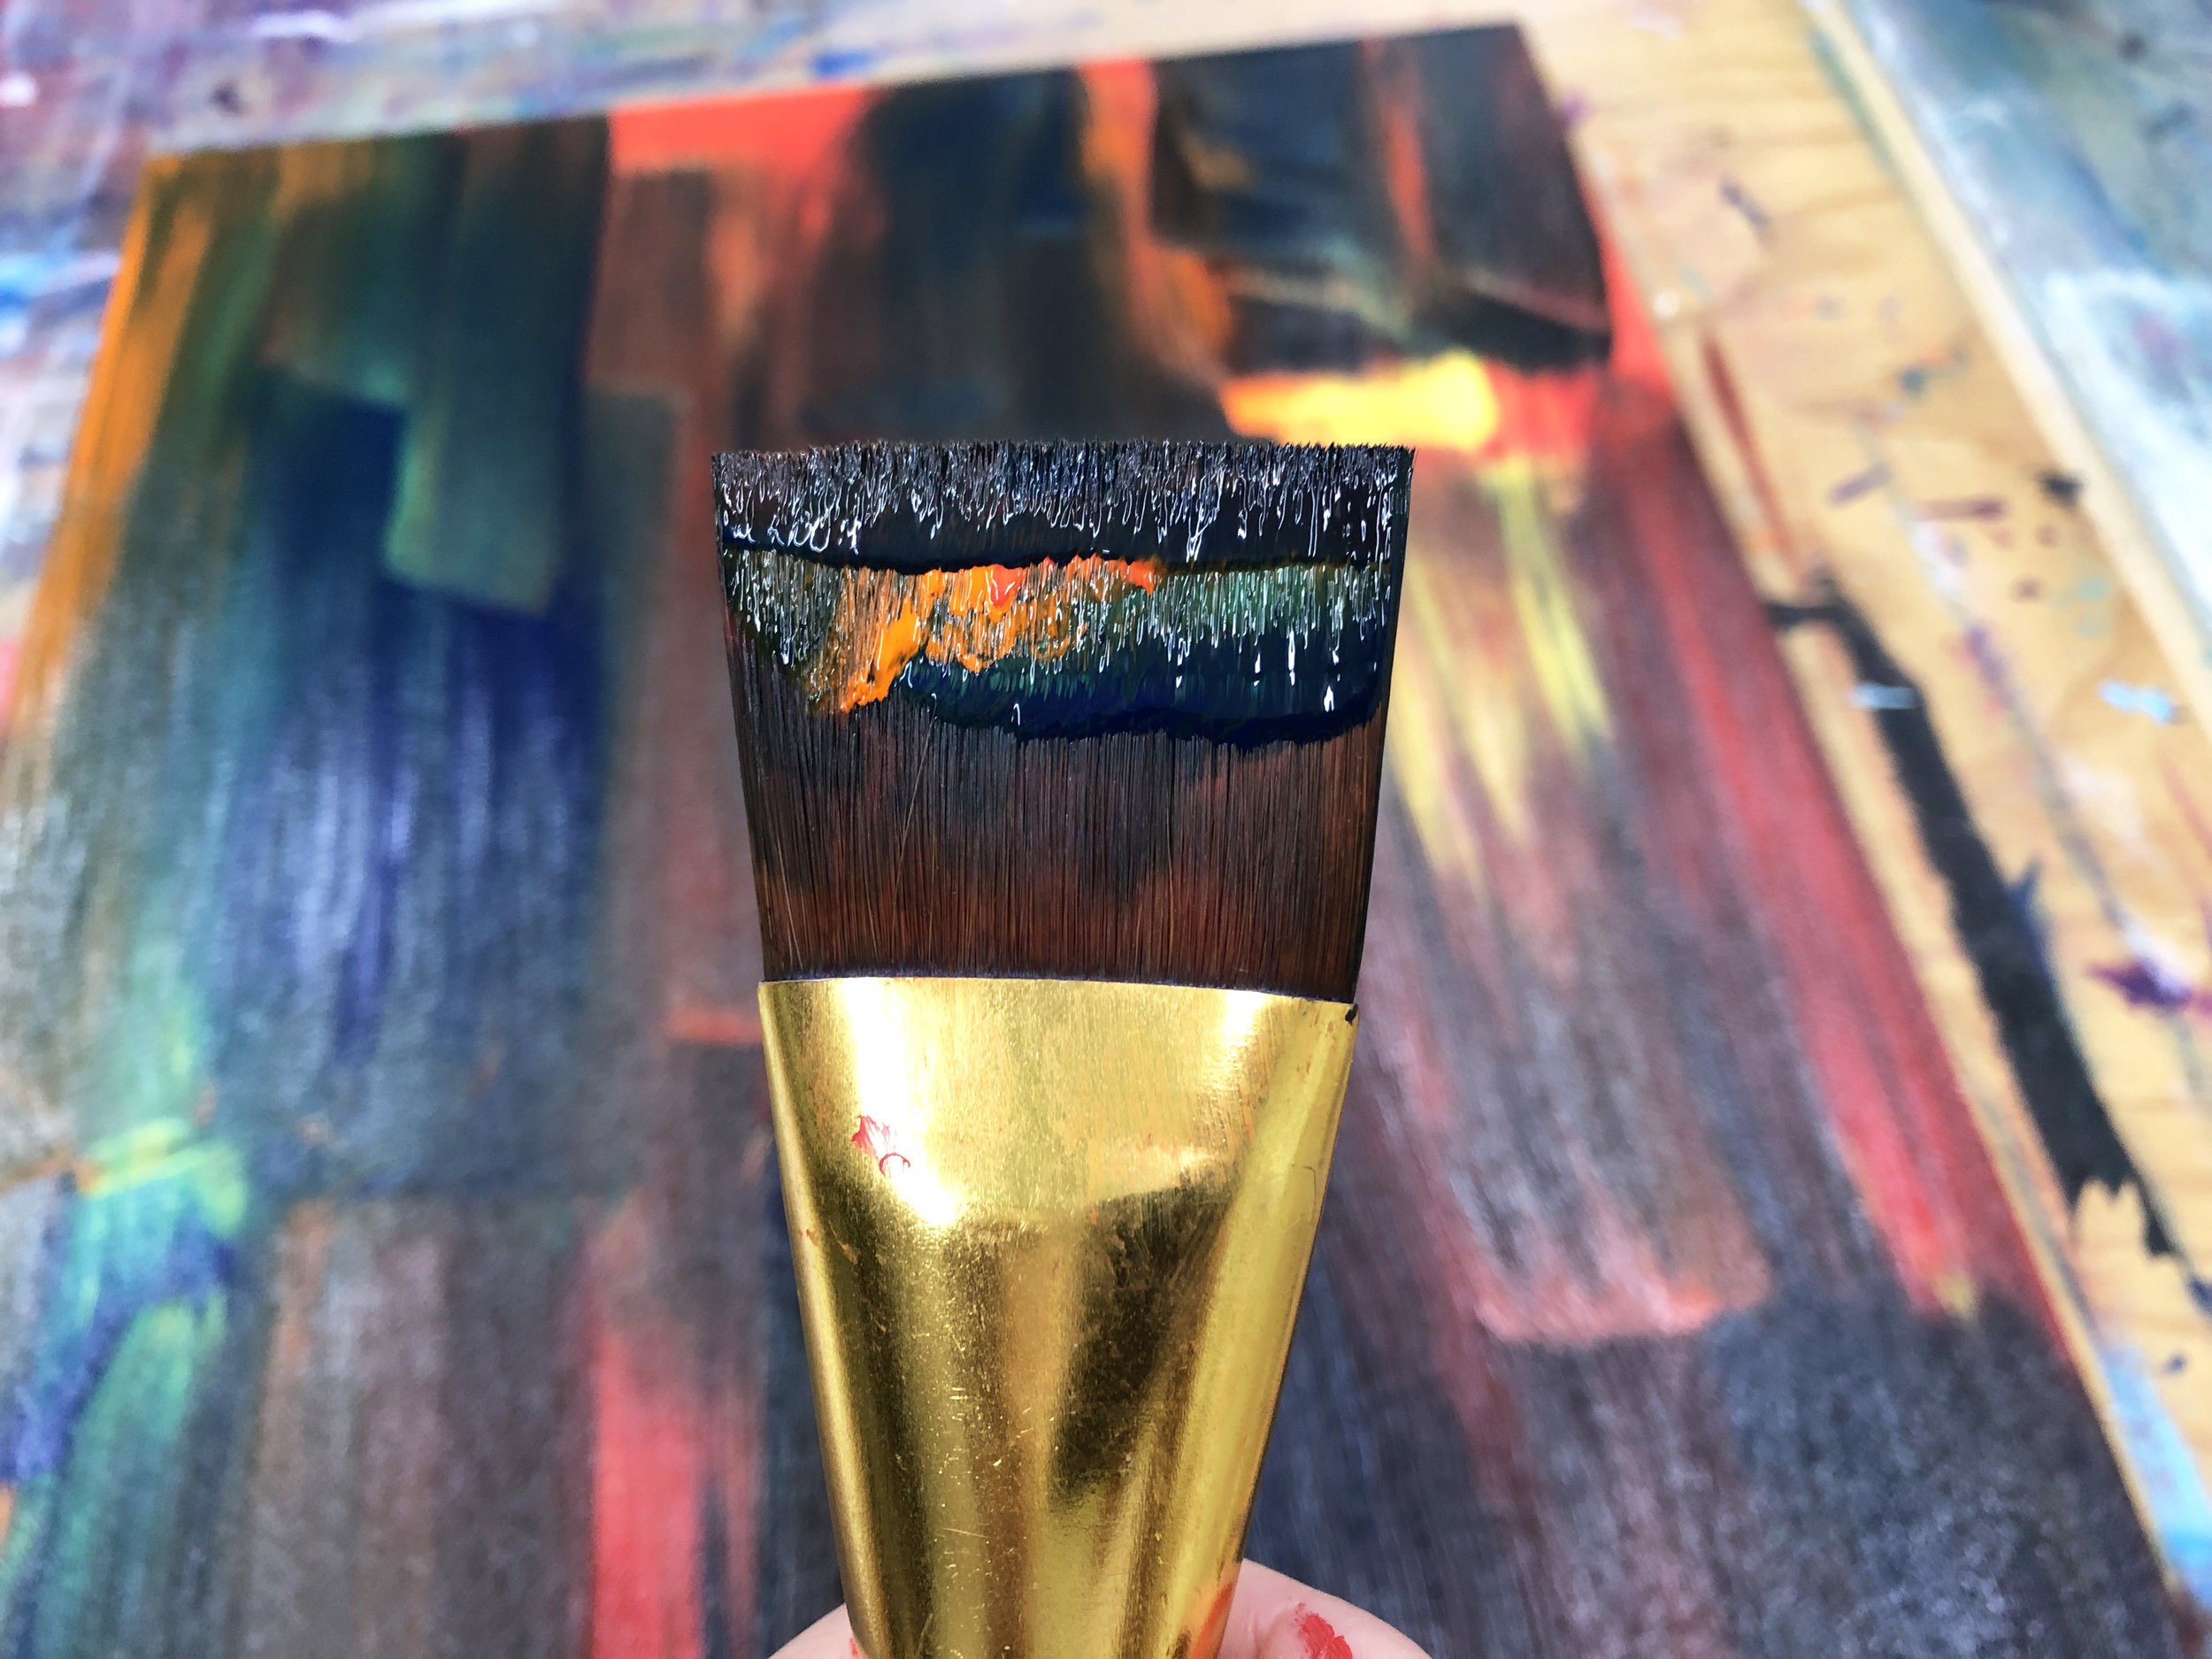 paint filled brush strokes in mixed media art